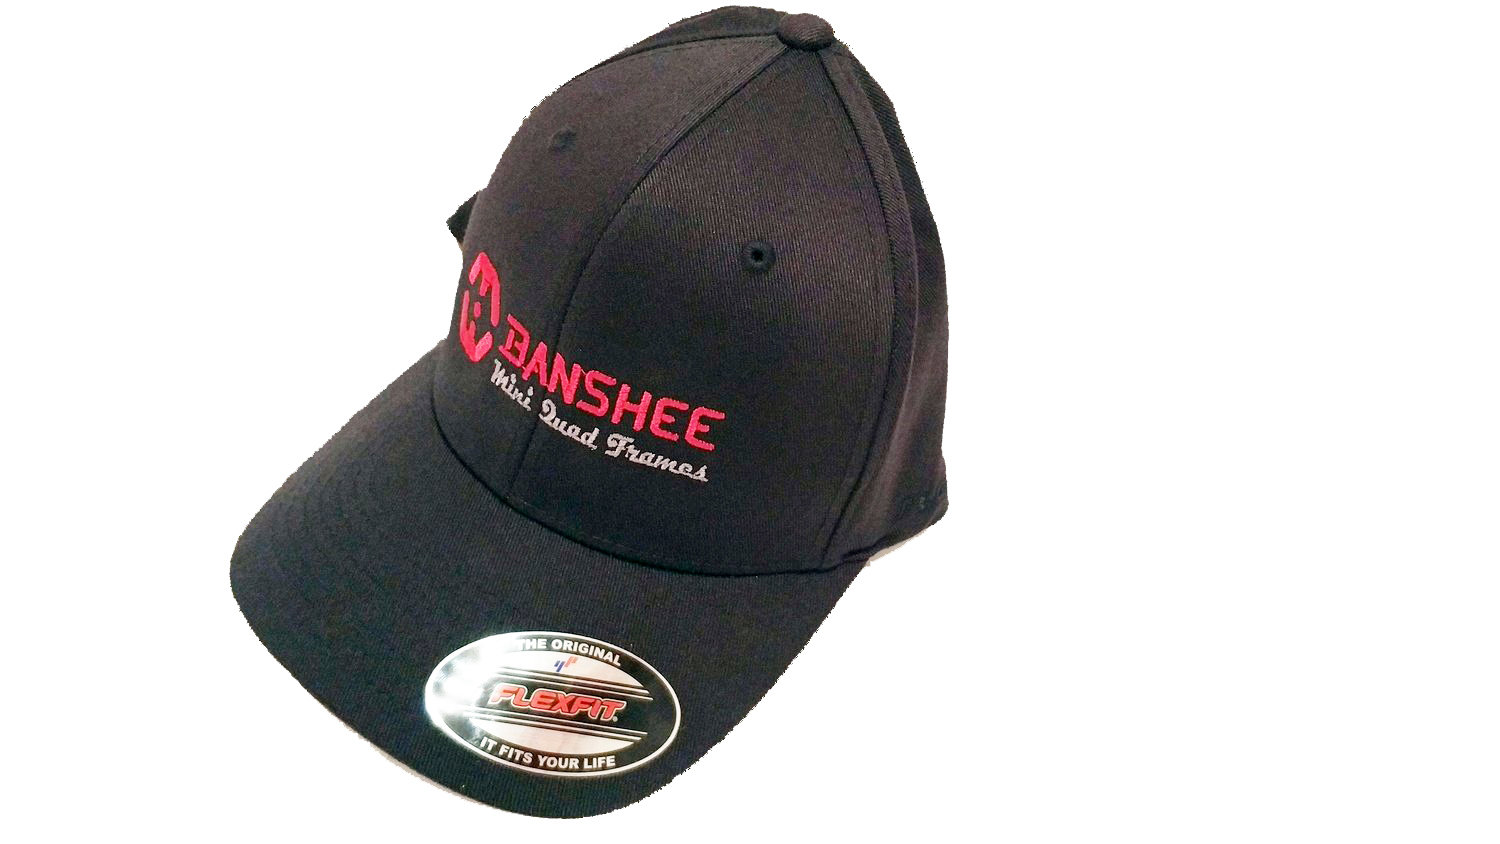 Banshee Caps - Team Wear